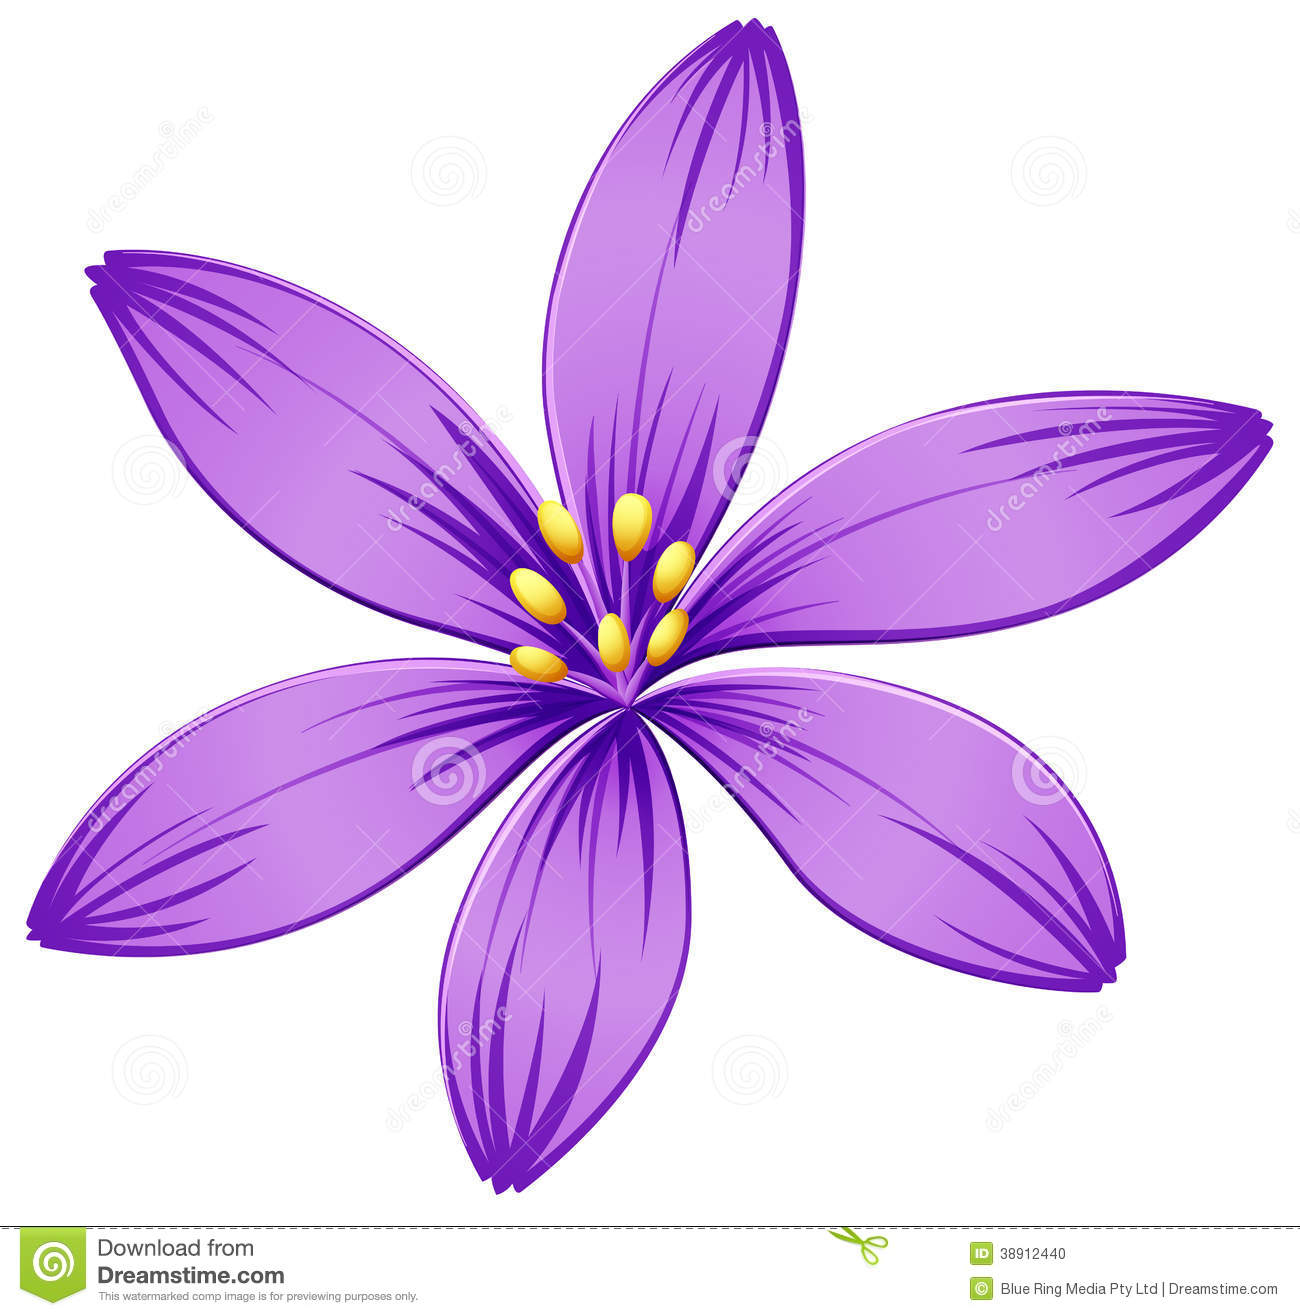 Illustration Of A Five Petal Purple Flower On A White Background